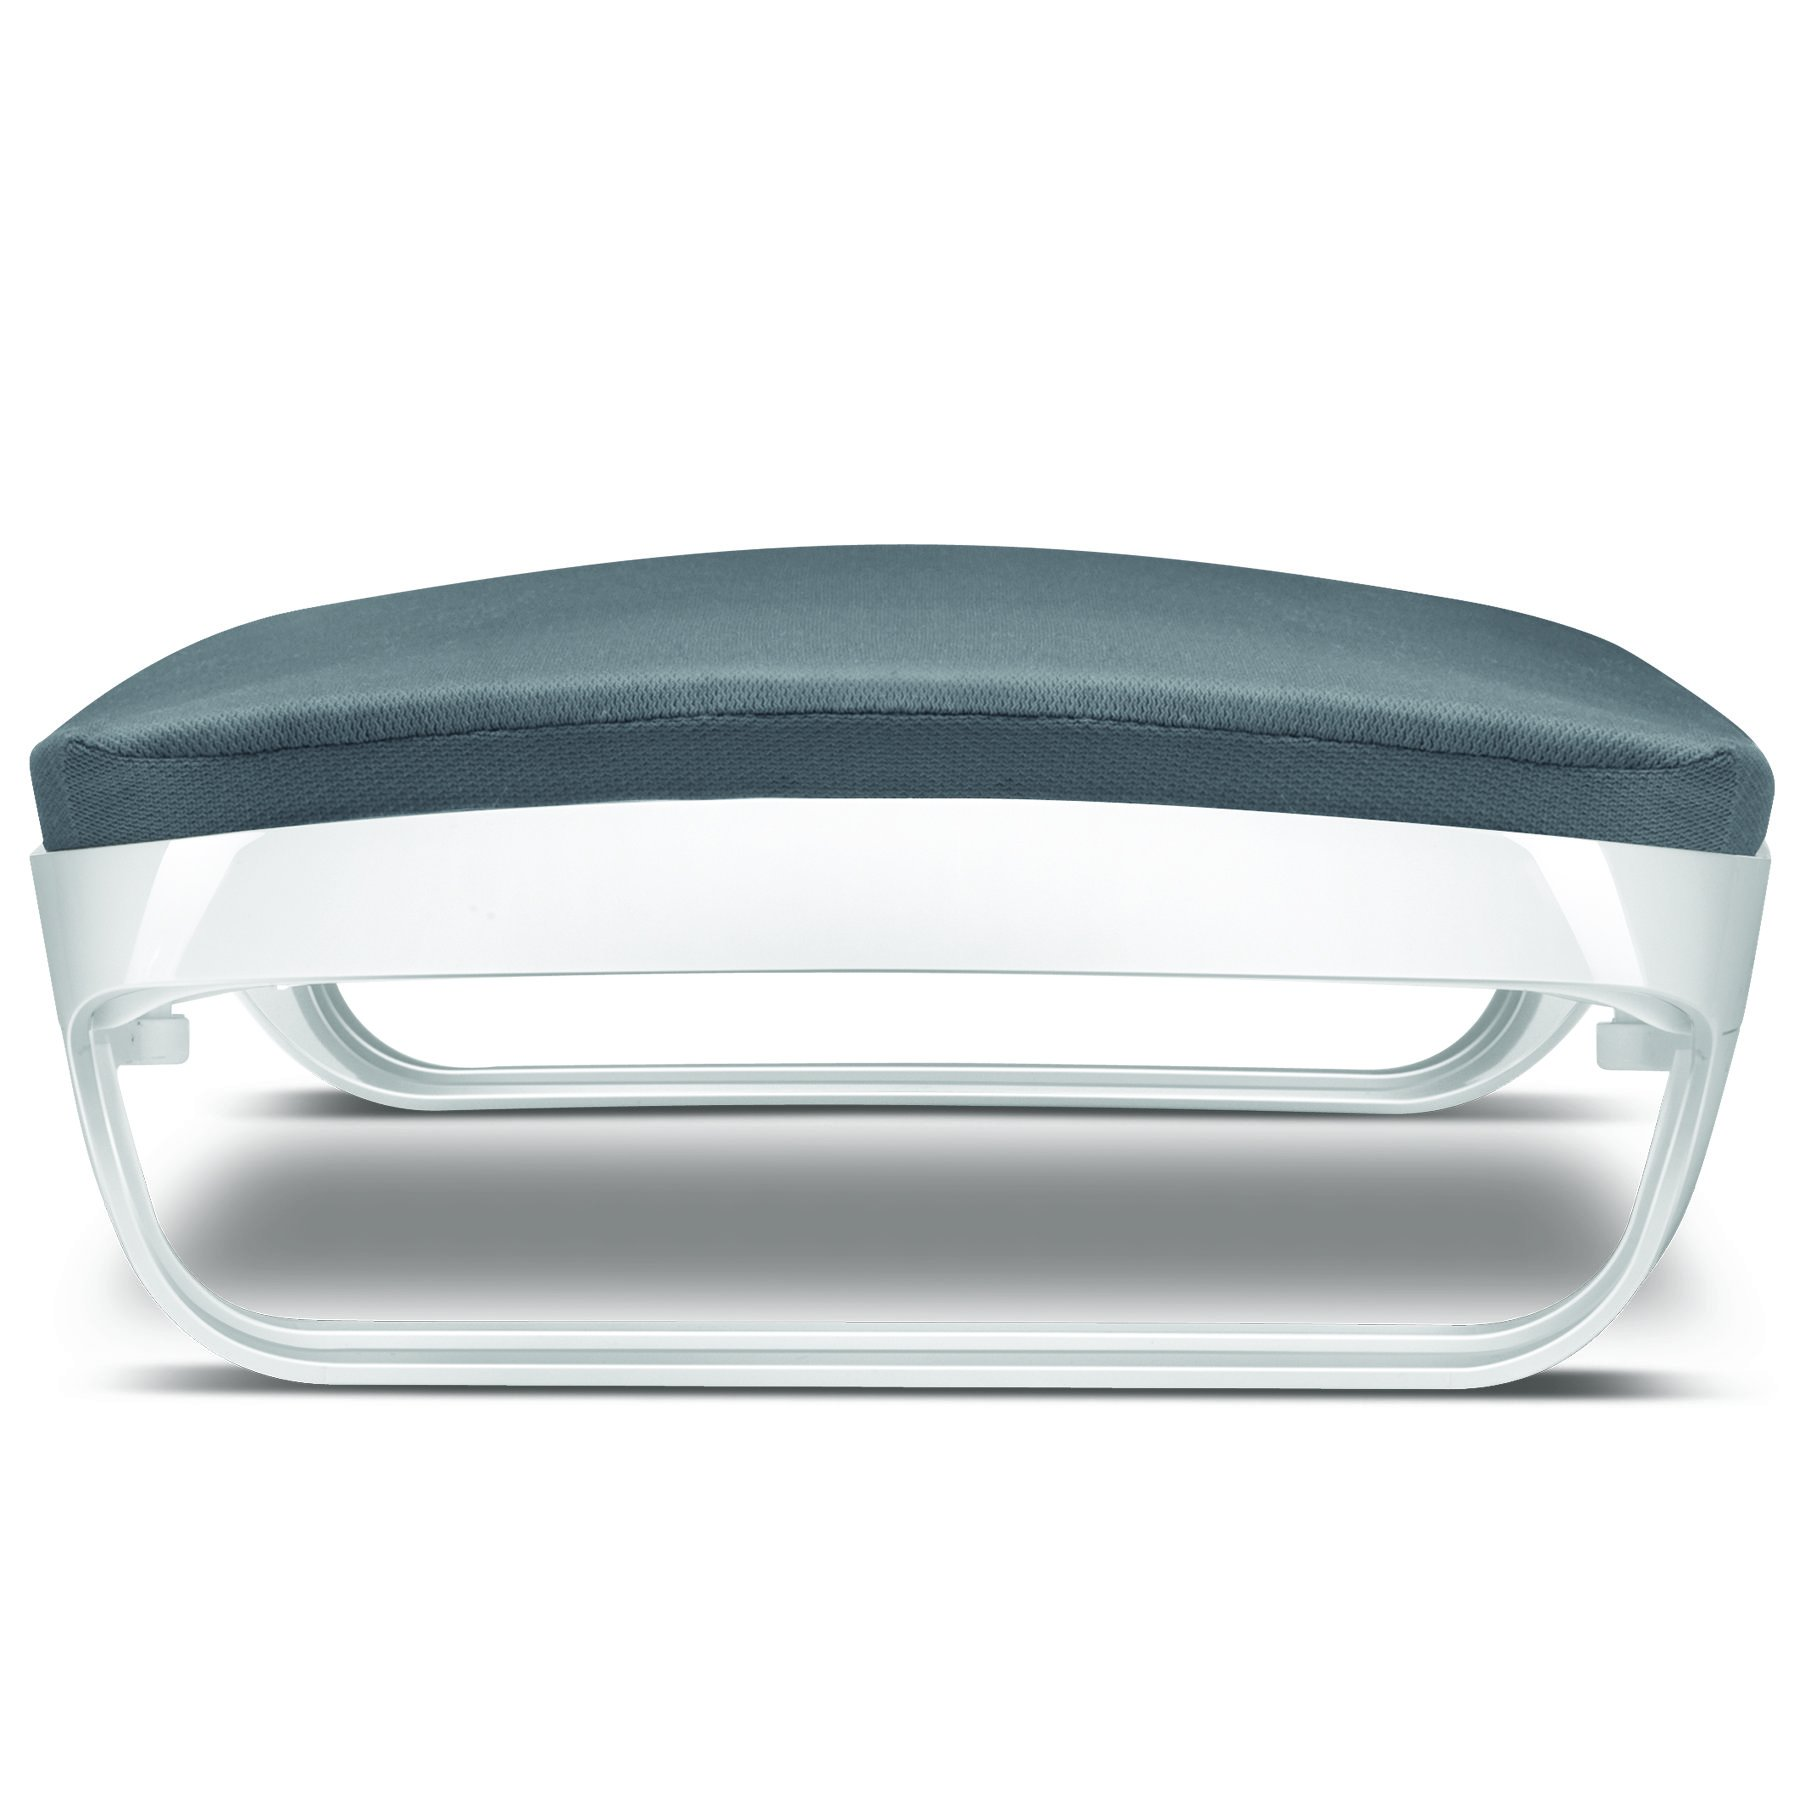 Fellowes I-Spire Series Foot Cushion/Rest, White/Gray (9311701) by Fellowes (Image #4)